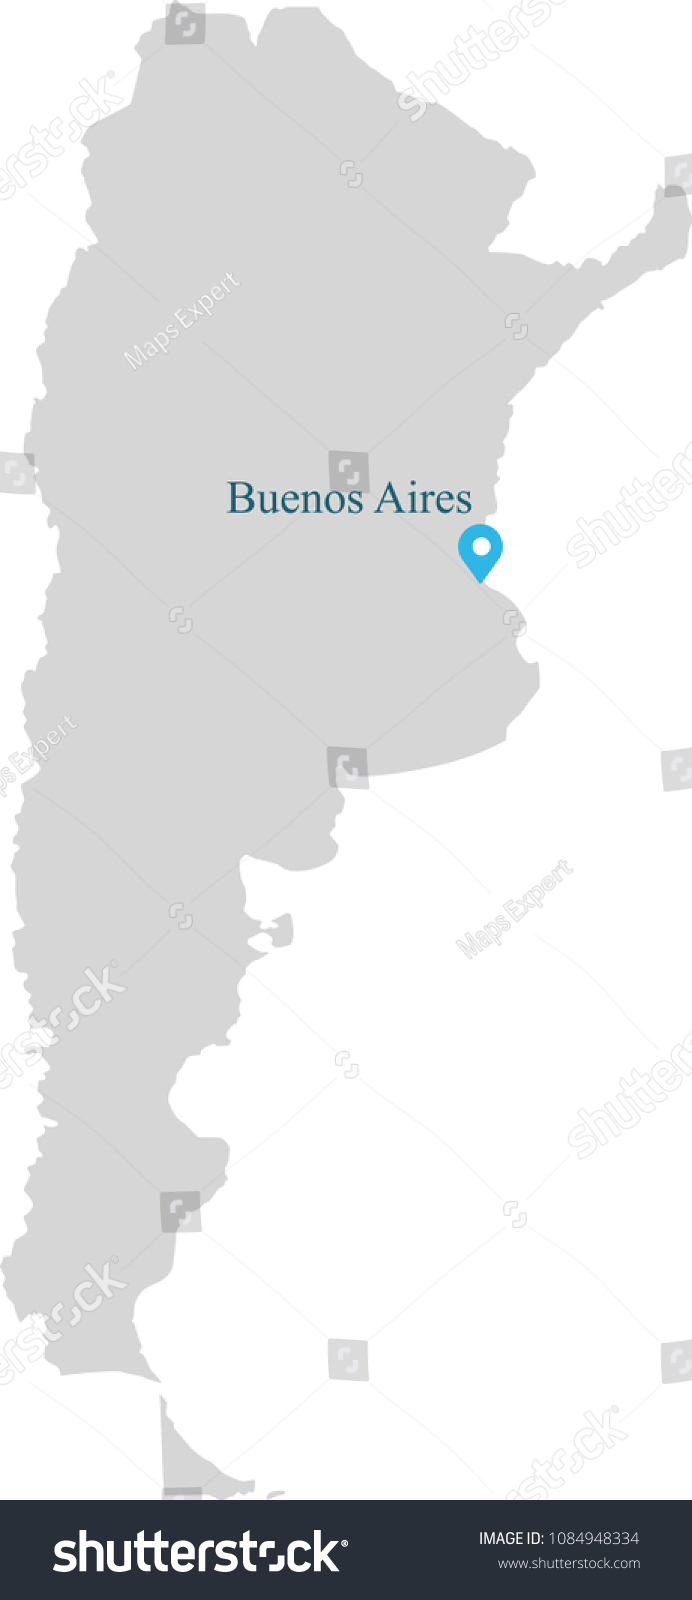 Buenos Aires Location On World Map.Argentina Map Vector Outline Illustration Capital Stock Vector